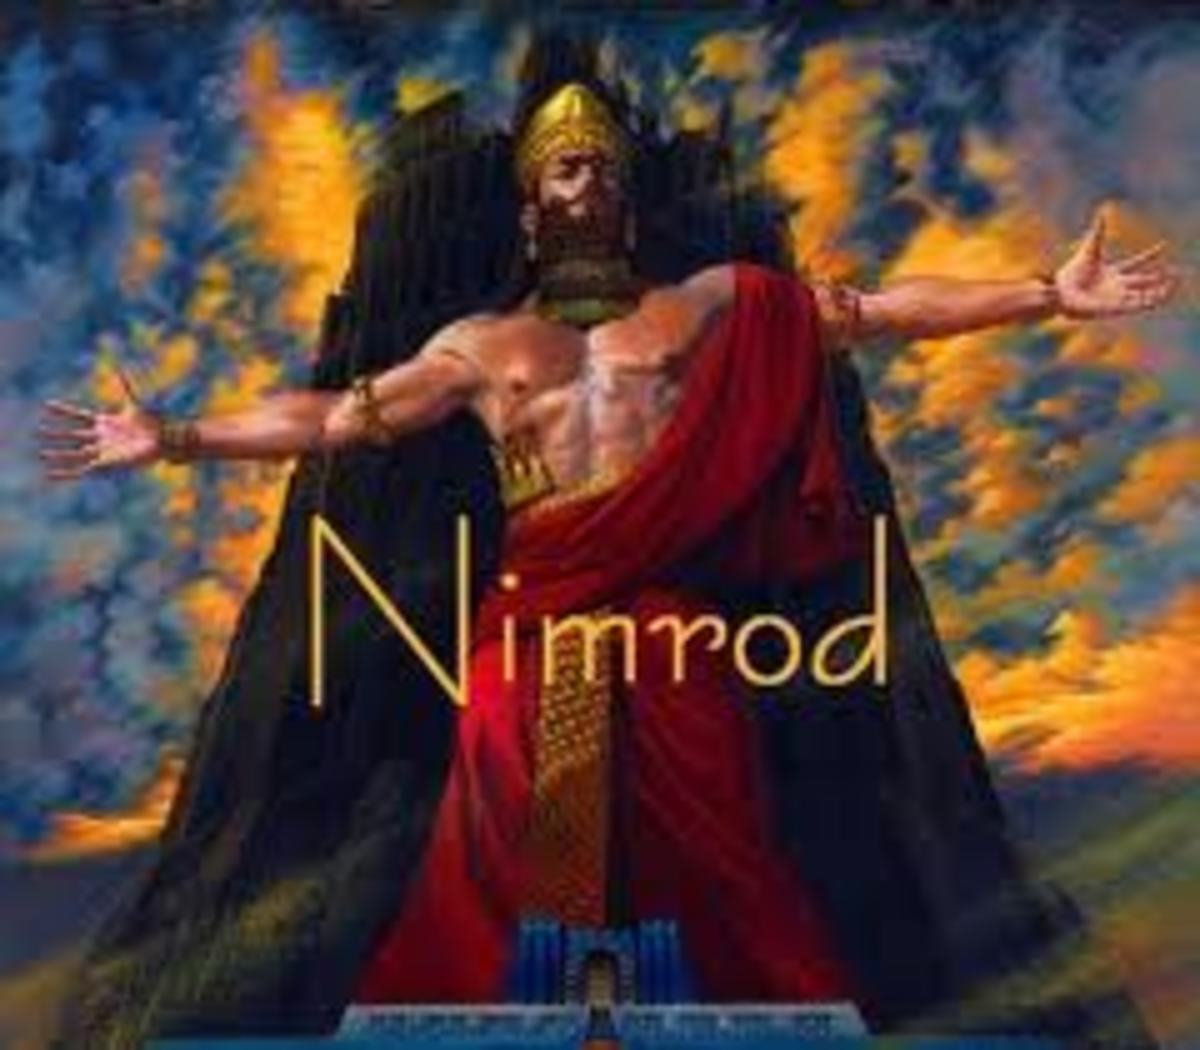 nimrod-the-worlds-first-tyrant-and-forerunner-of-the-antichrist